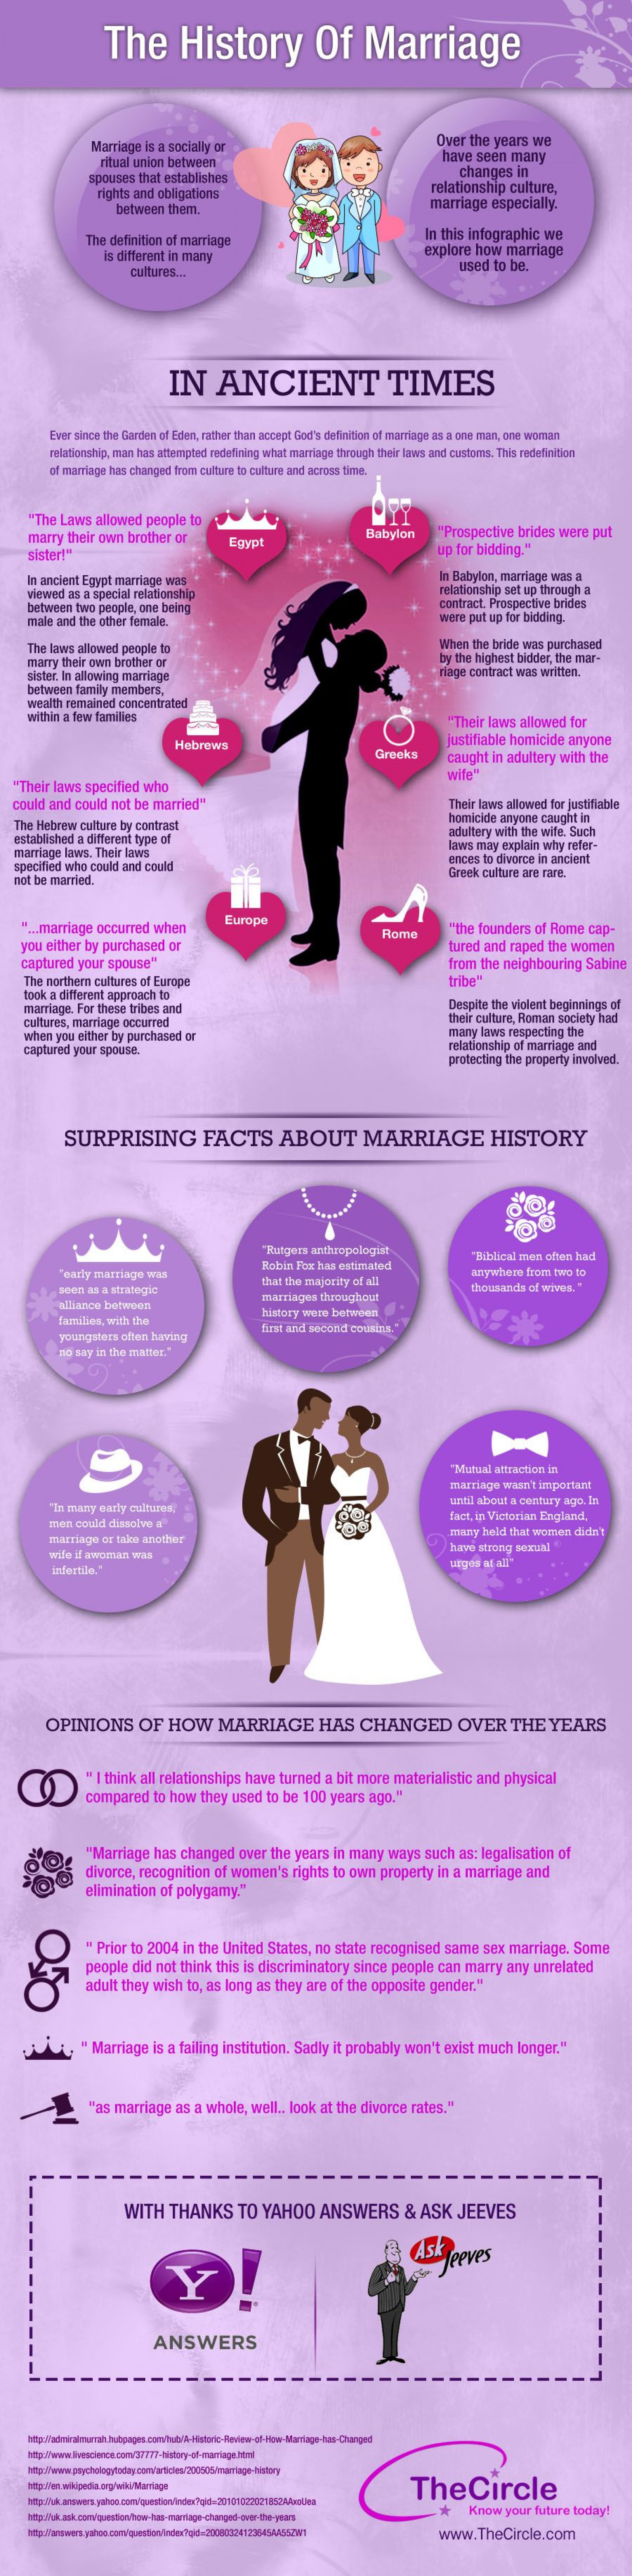 The History of Marriage Infographic